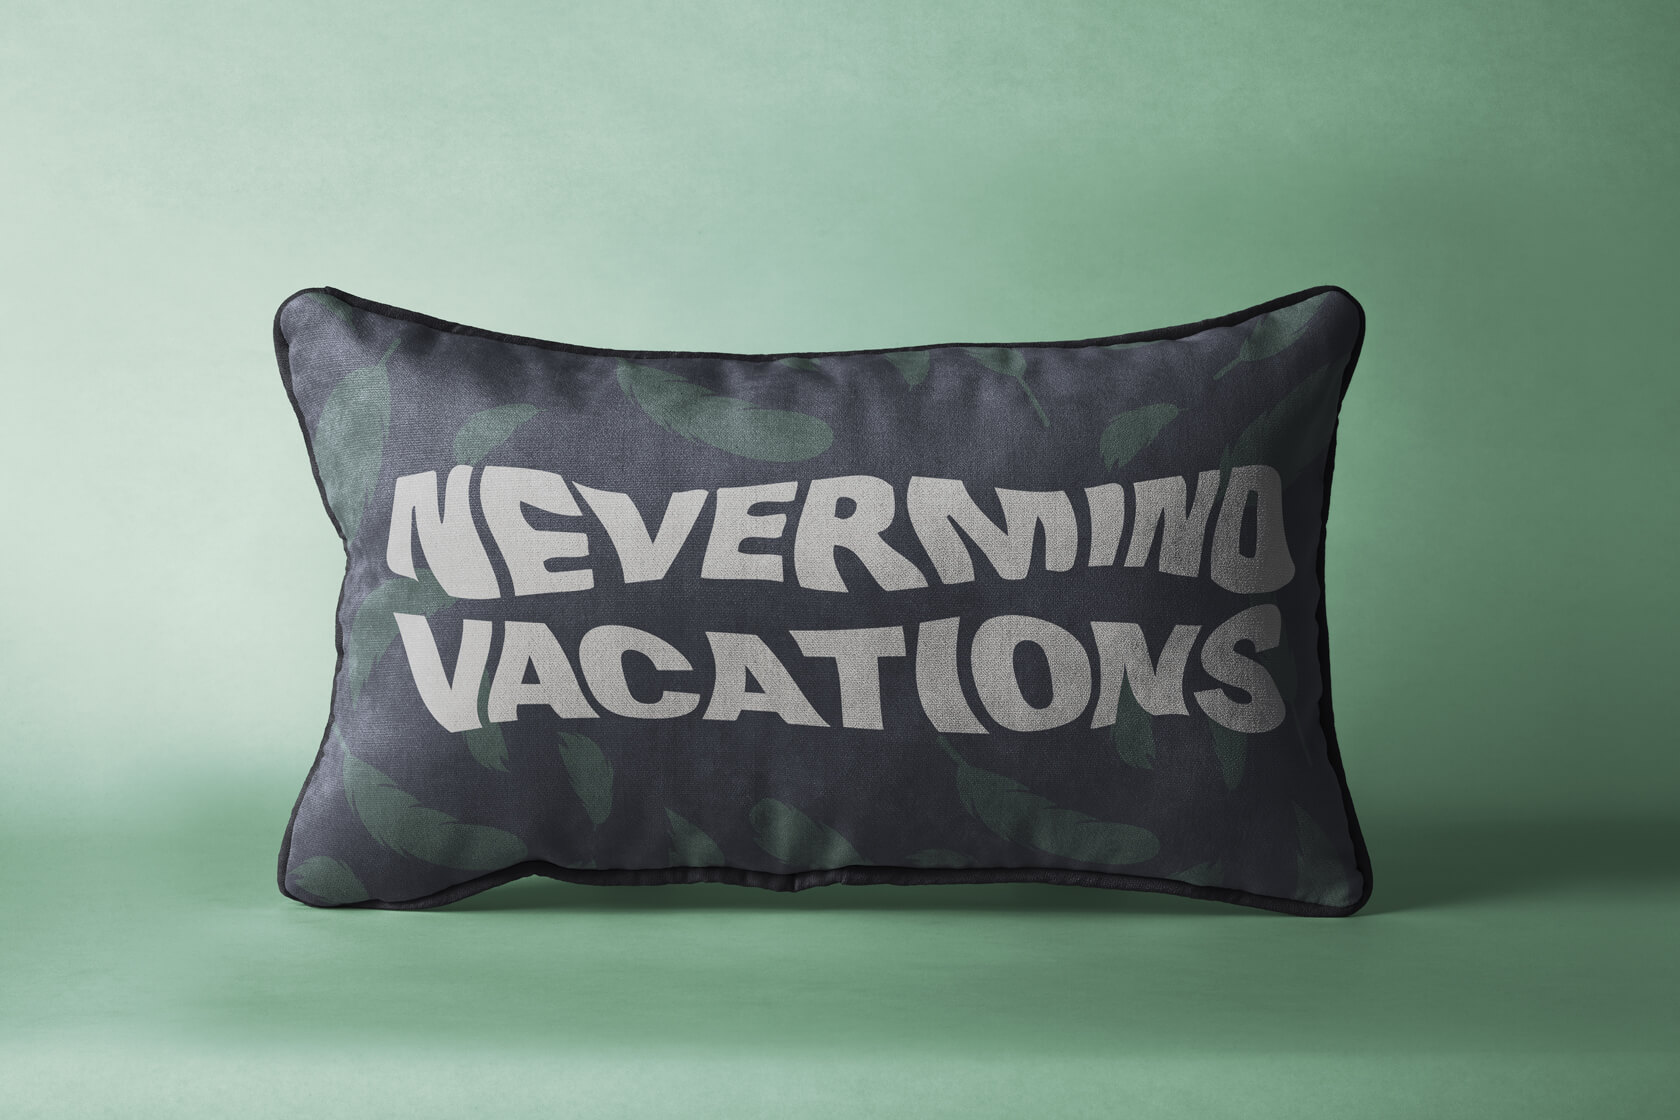 Nevermind Vacations pillow logo